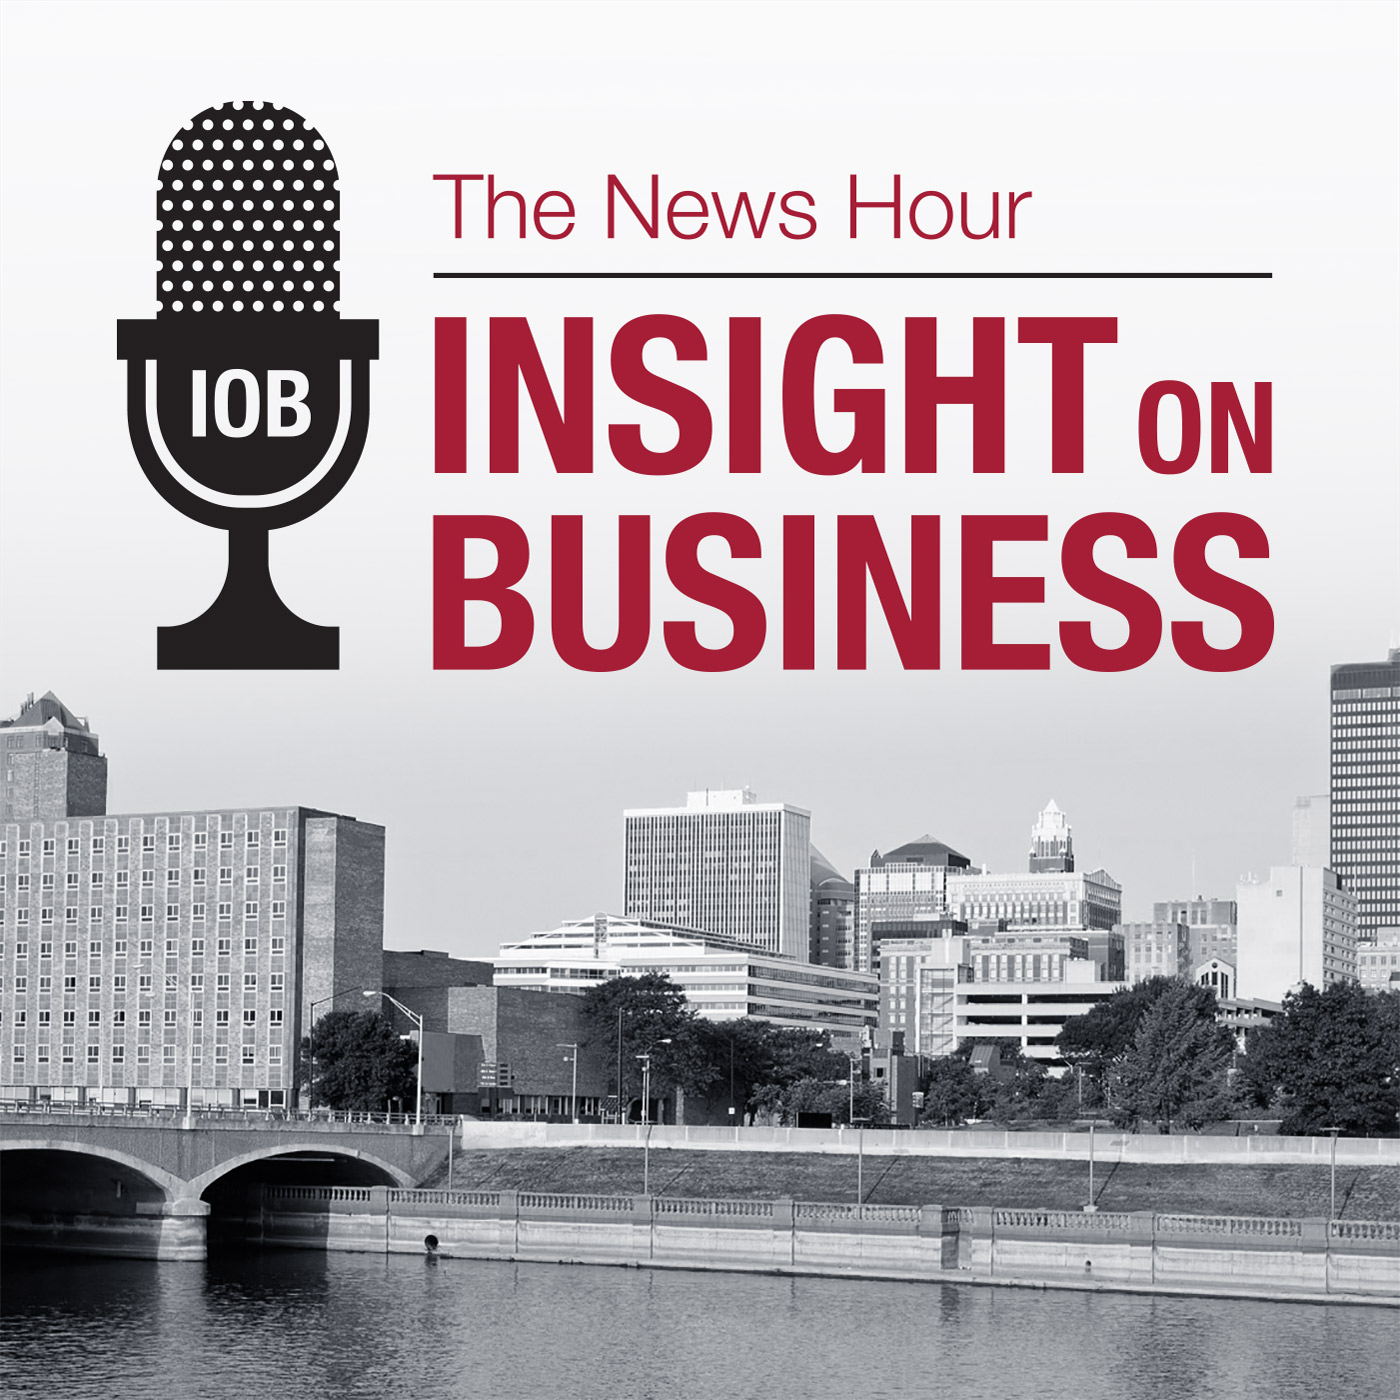 Insight On Business the News Hour